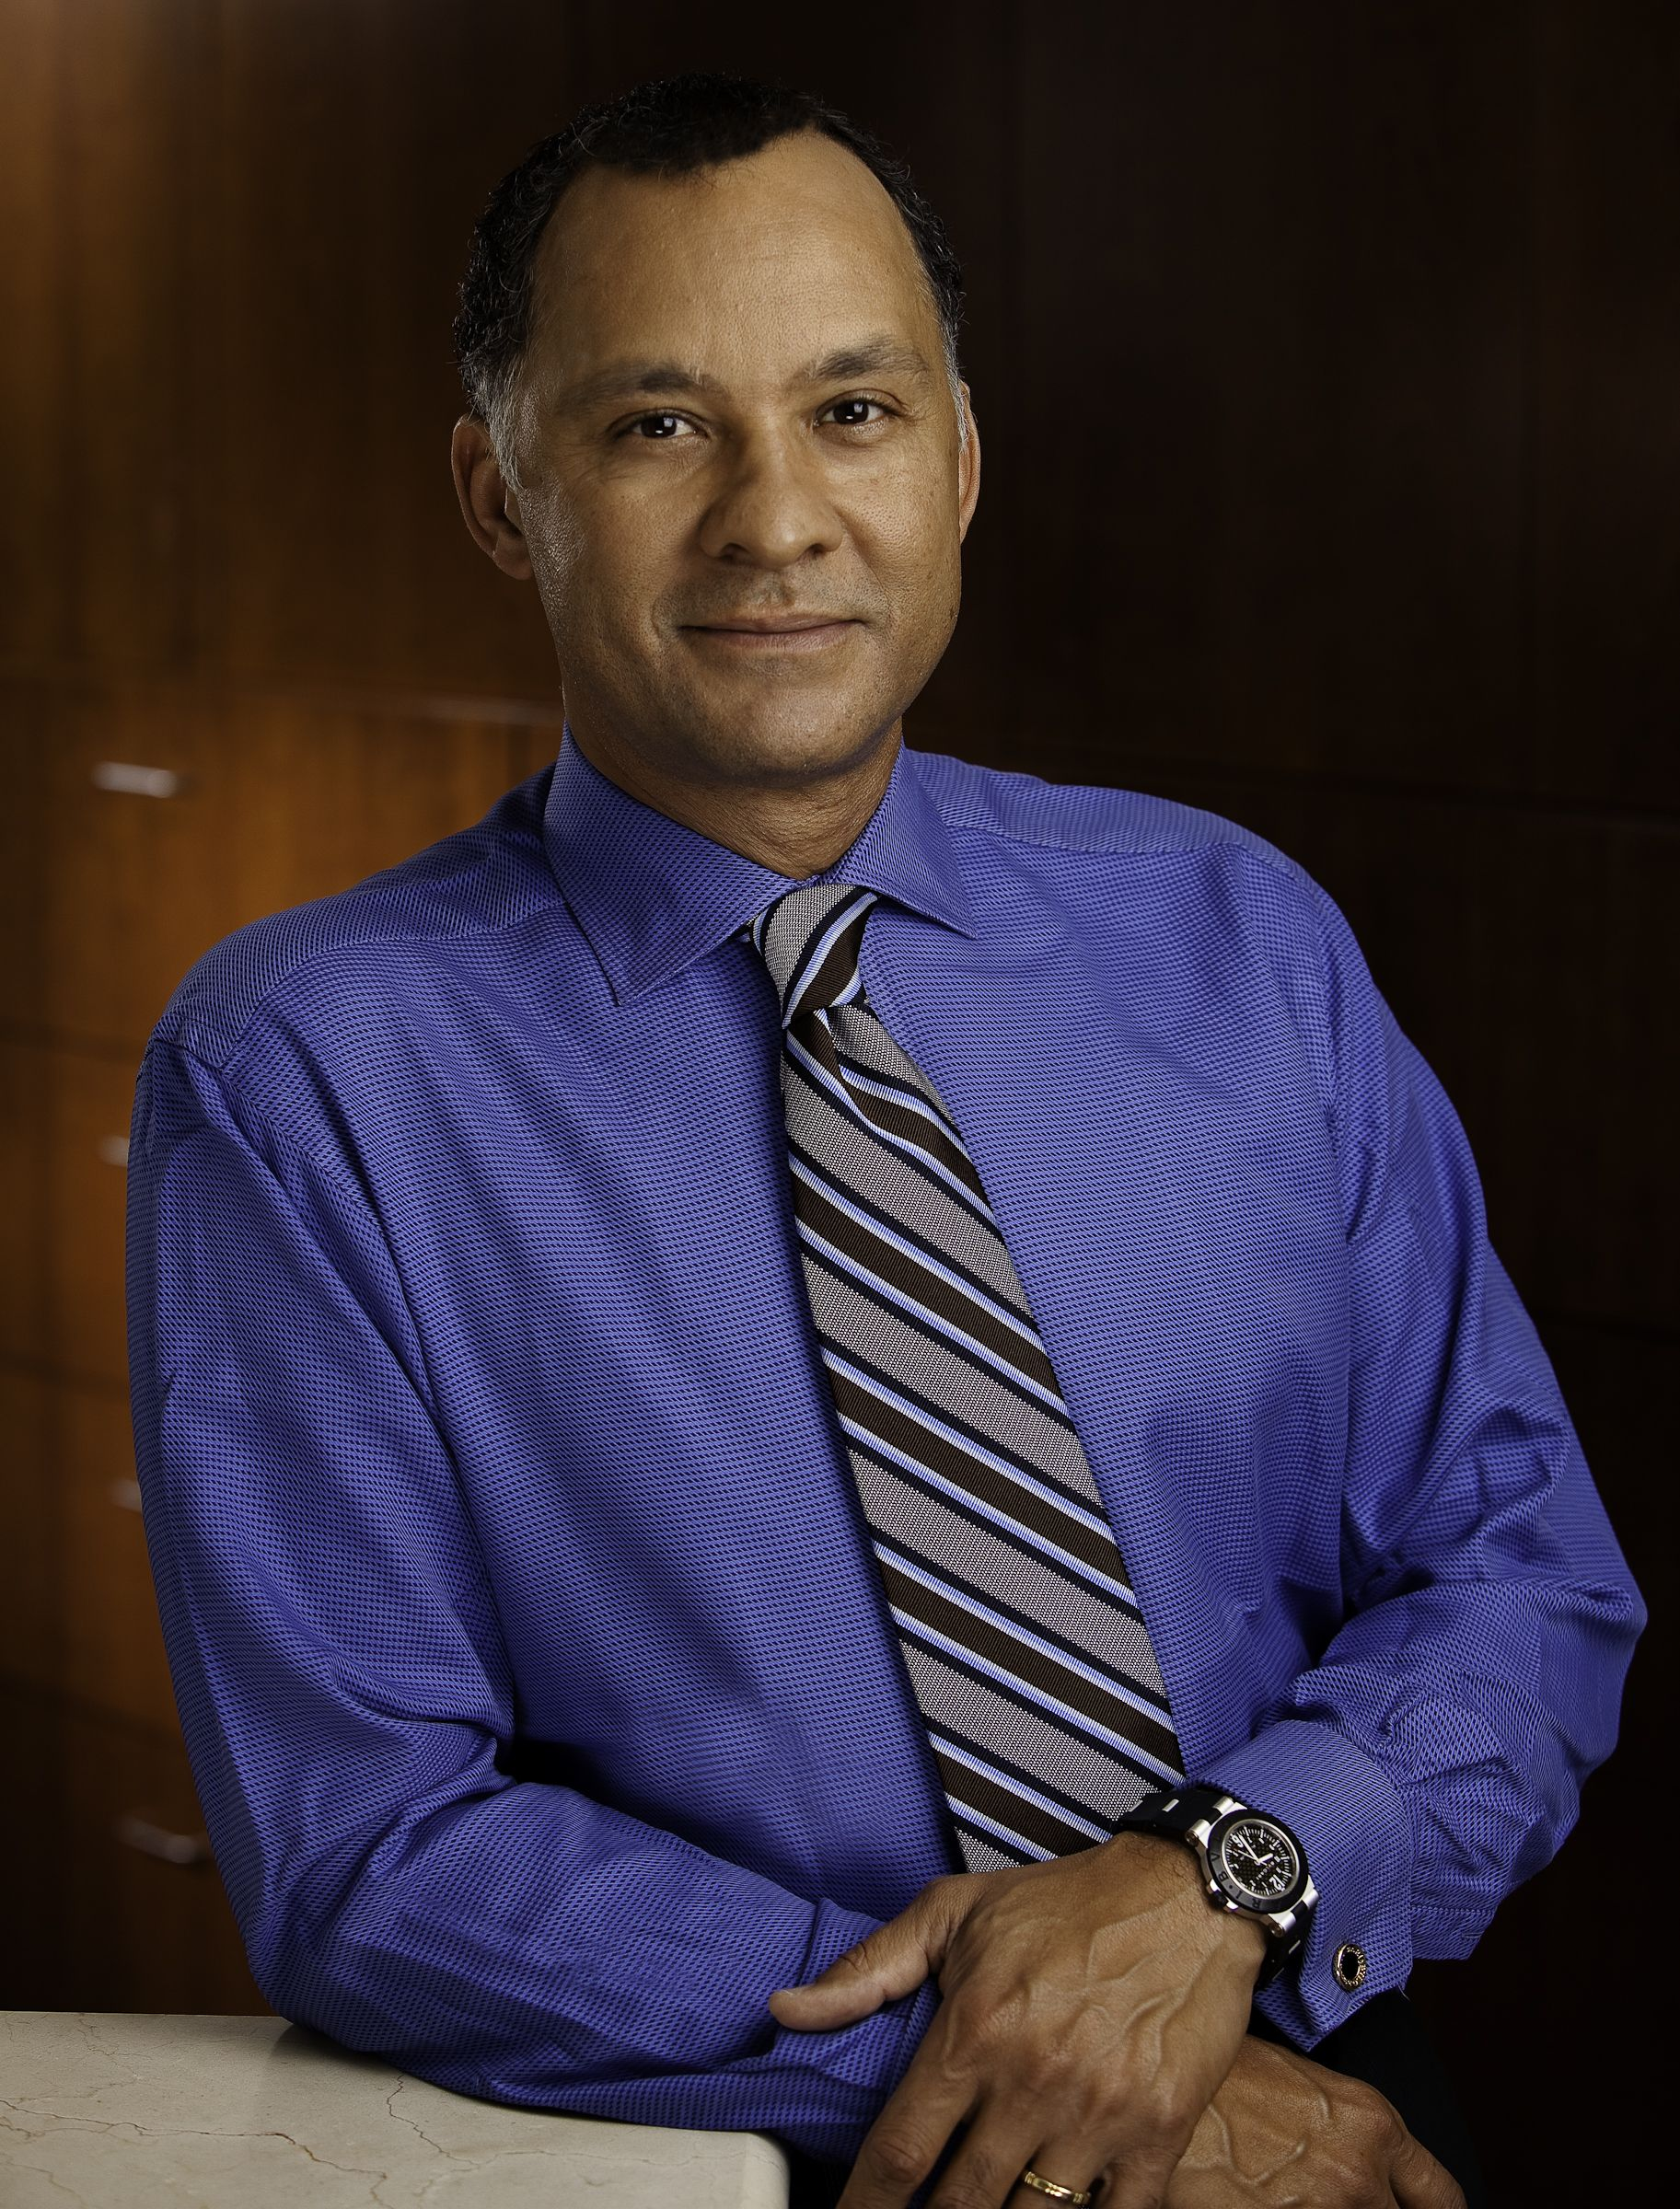 Miguel A. Delgado, Jr., MD holds the two credentials most